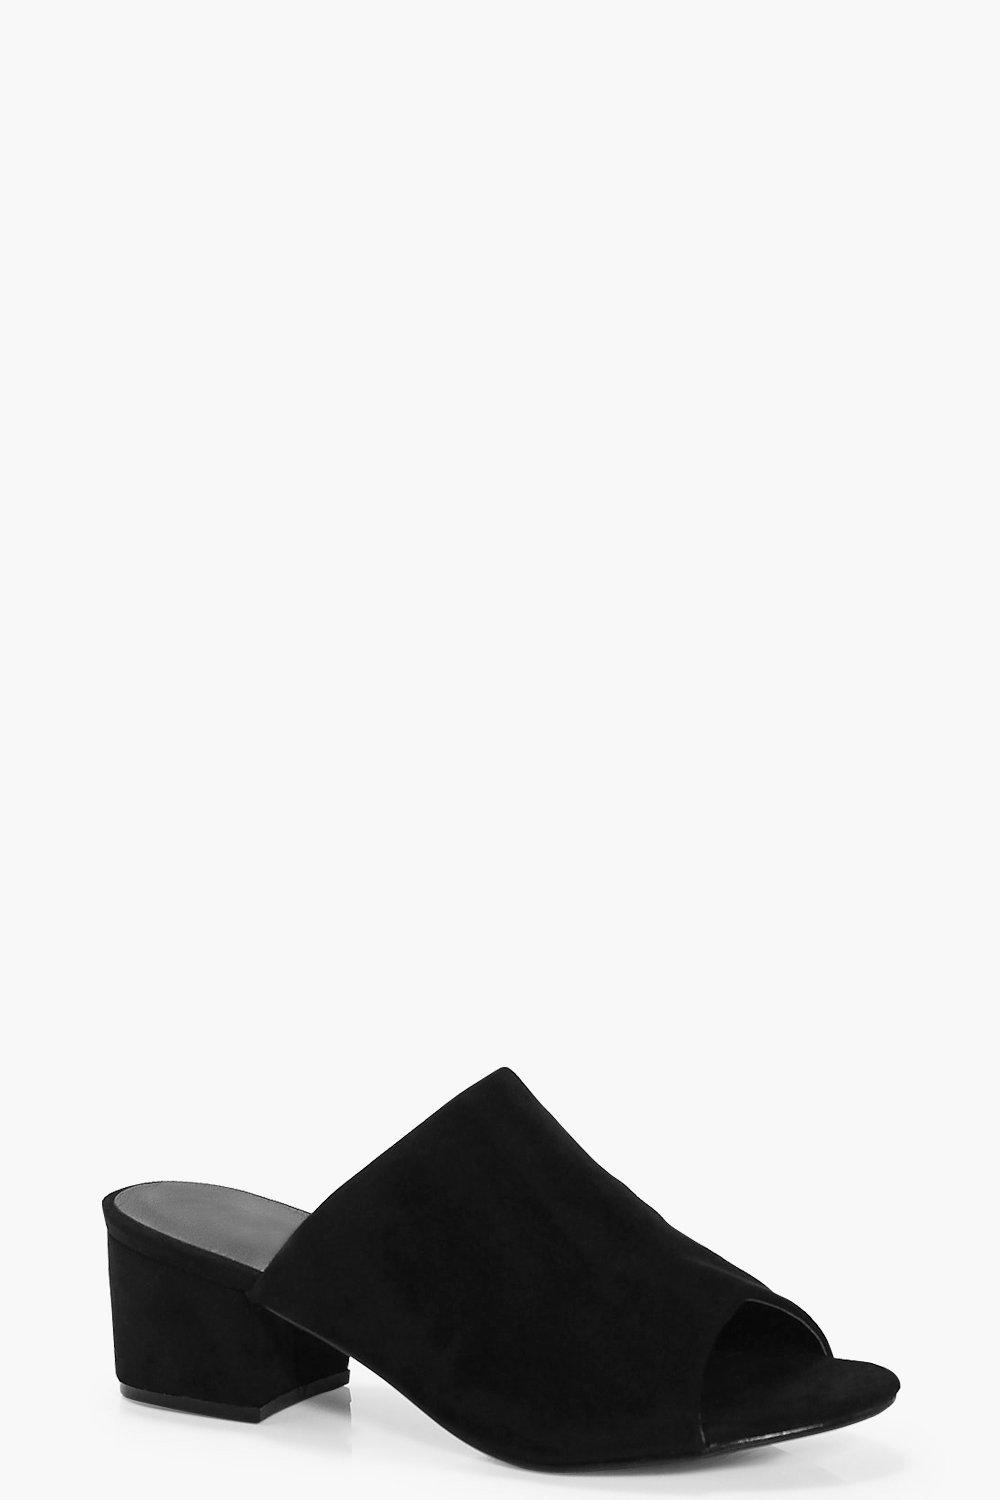 Frances Wide Fit Block Heel Mule